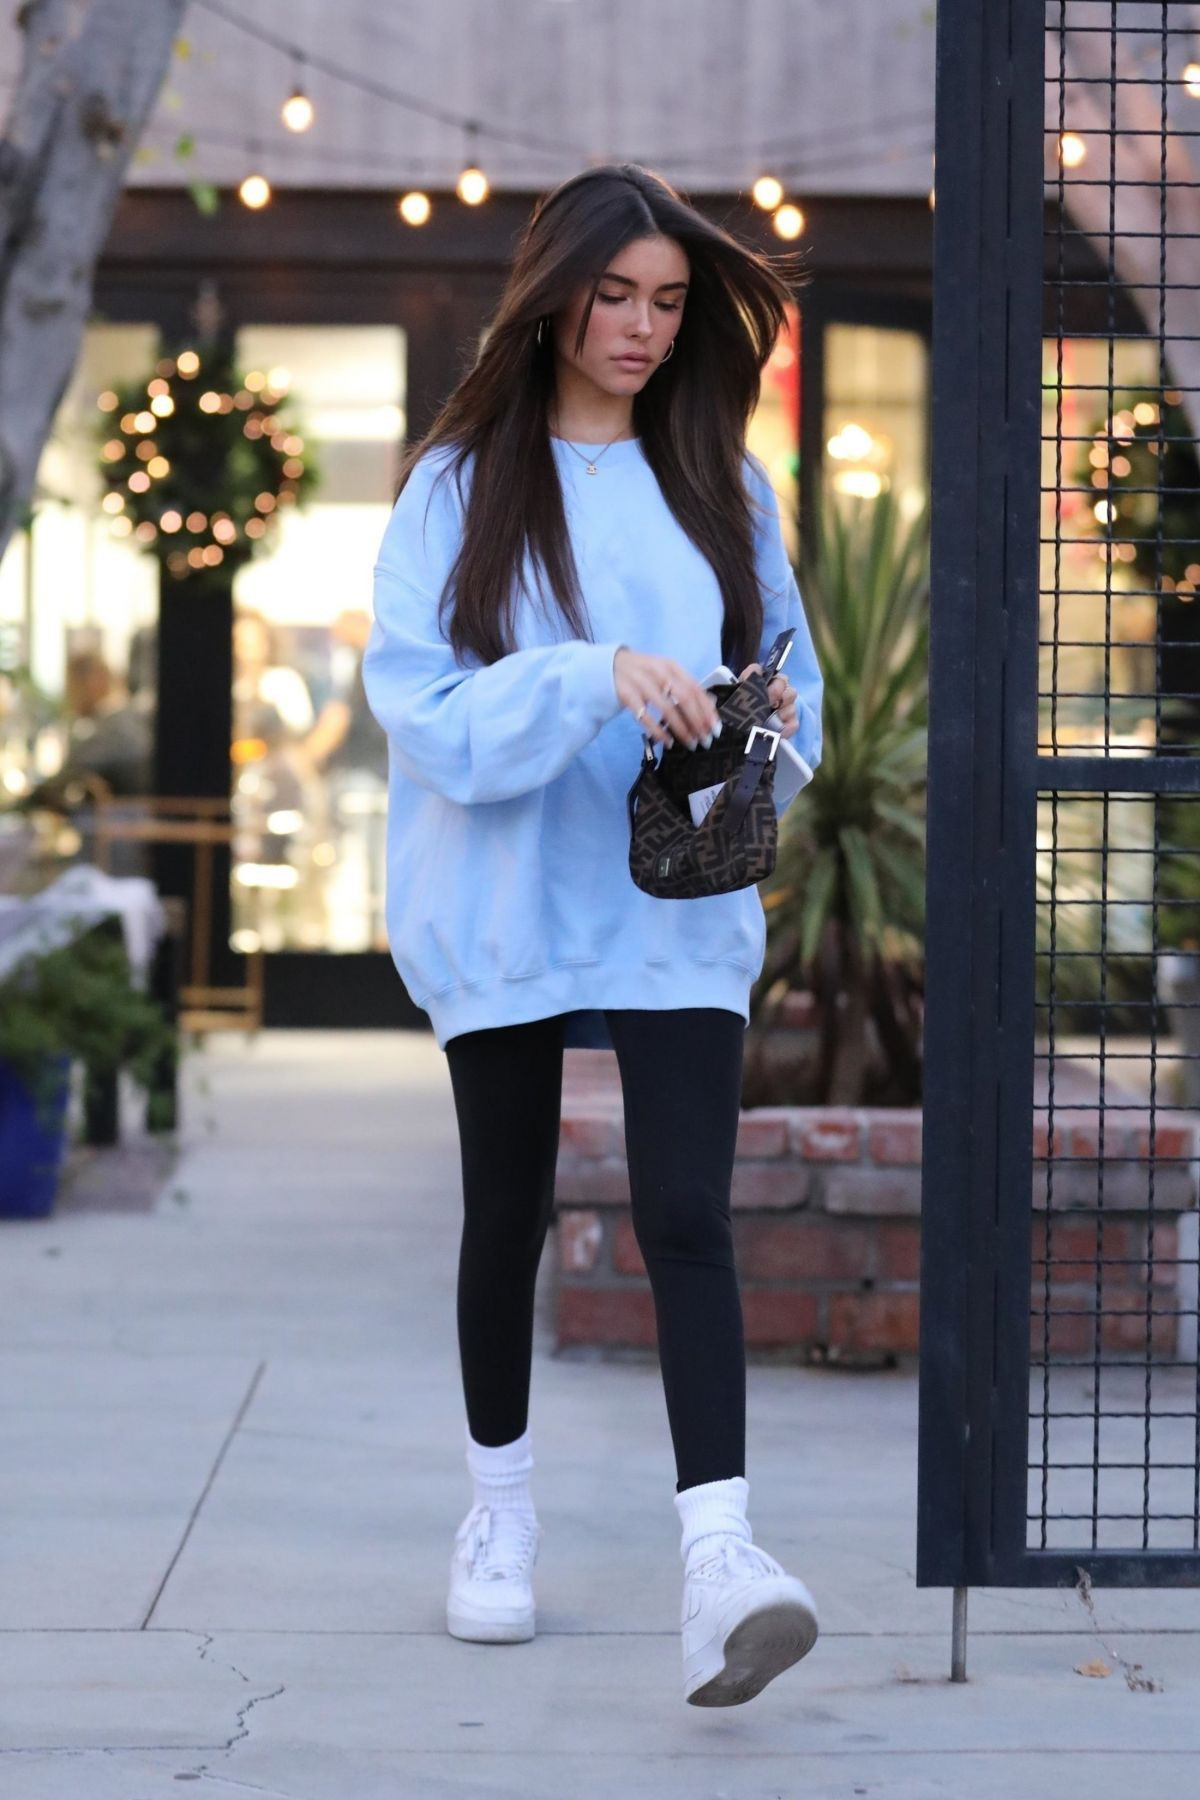 Clothing ideas madison beer brother, west hollywood, street fashion, madison beer, beer style